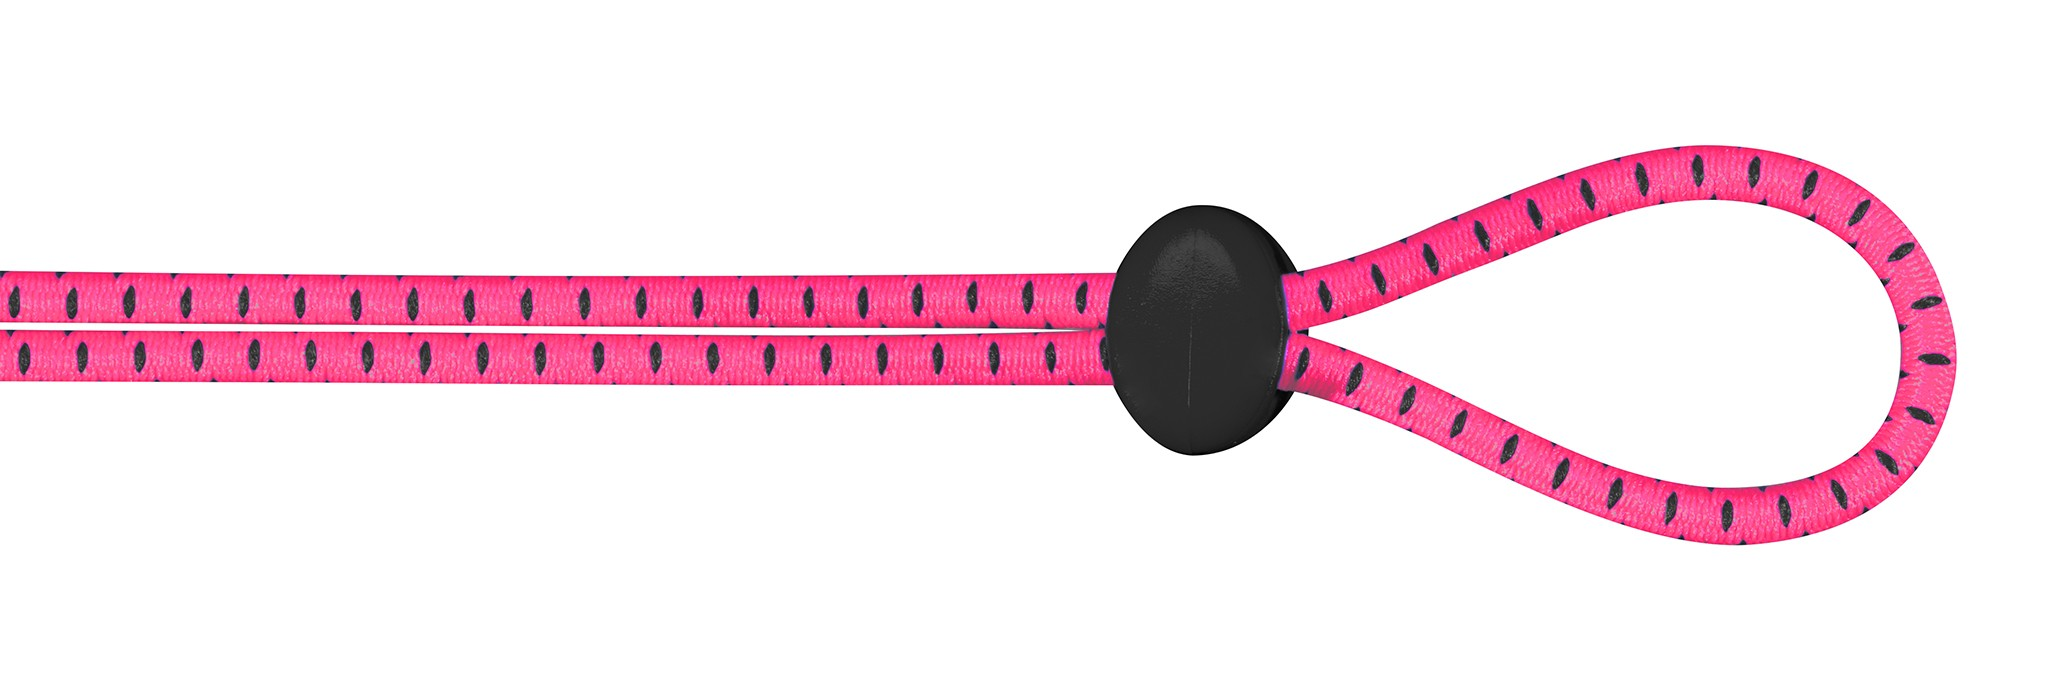 TYR Bungee Cord Strap Kit (Flash Pink (693))